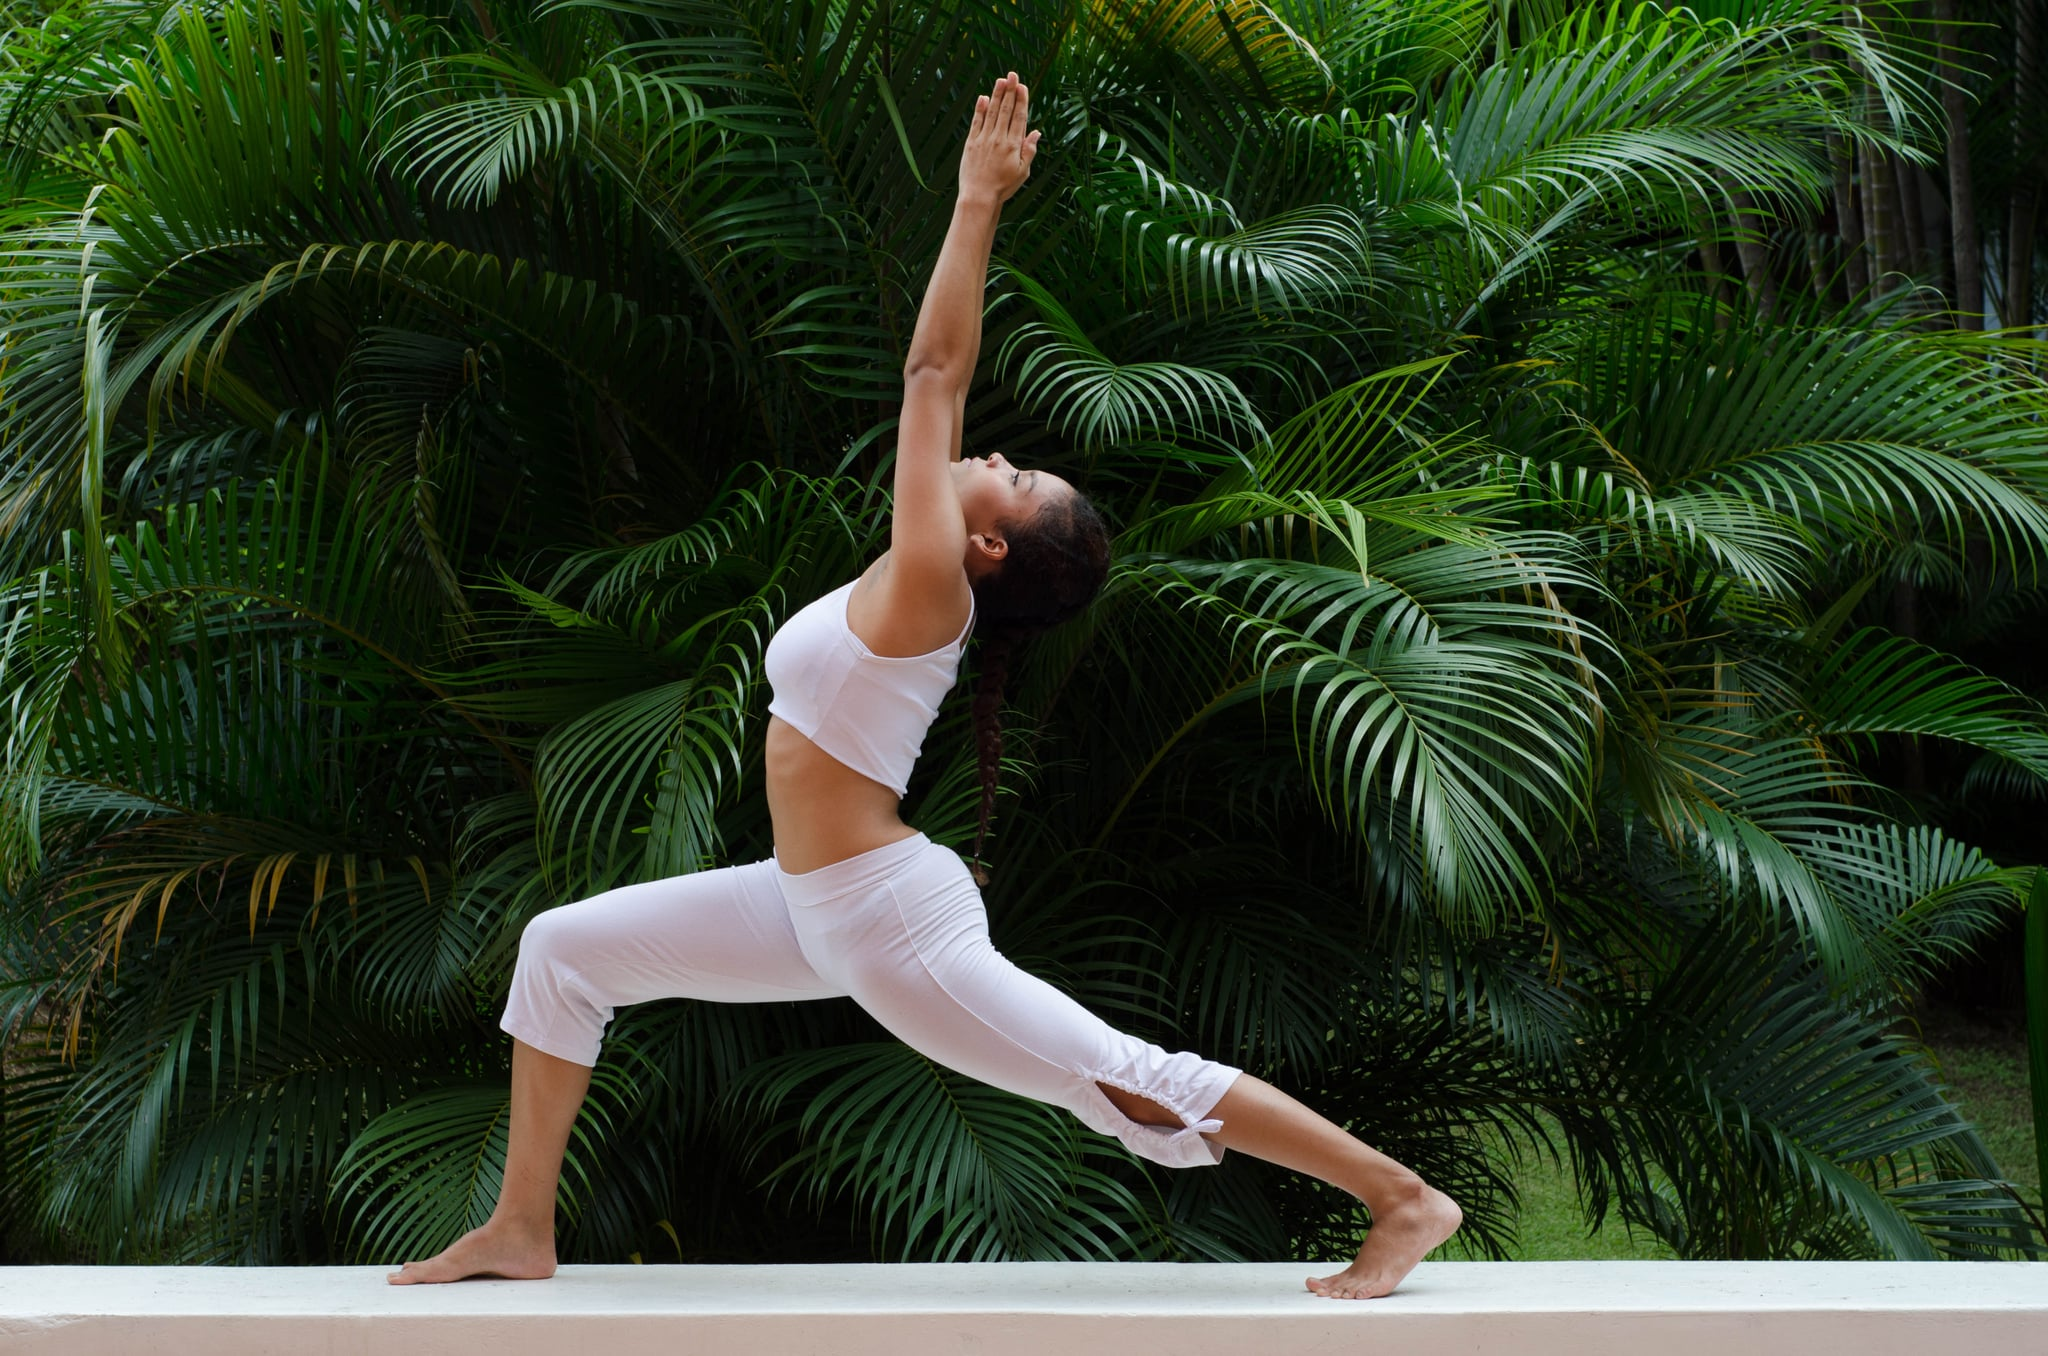 A woman doing a yoga pose on a garden (Ashwa Sanchalanasana)